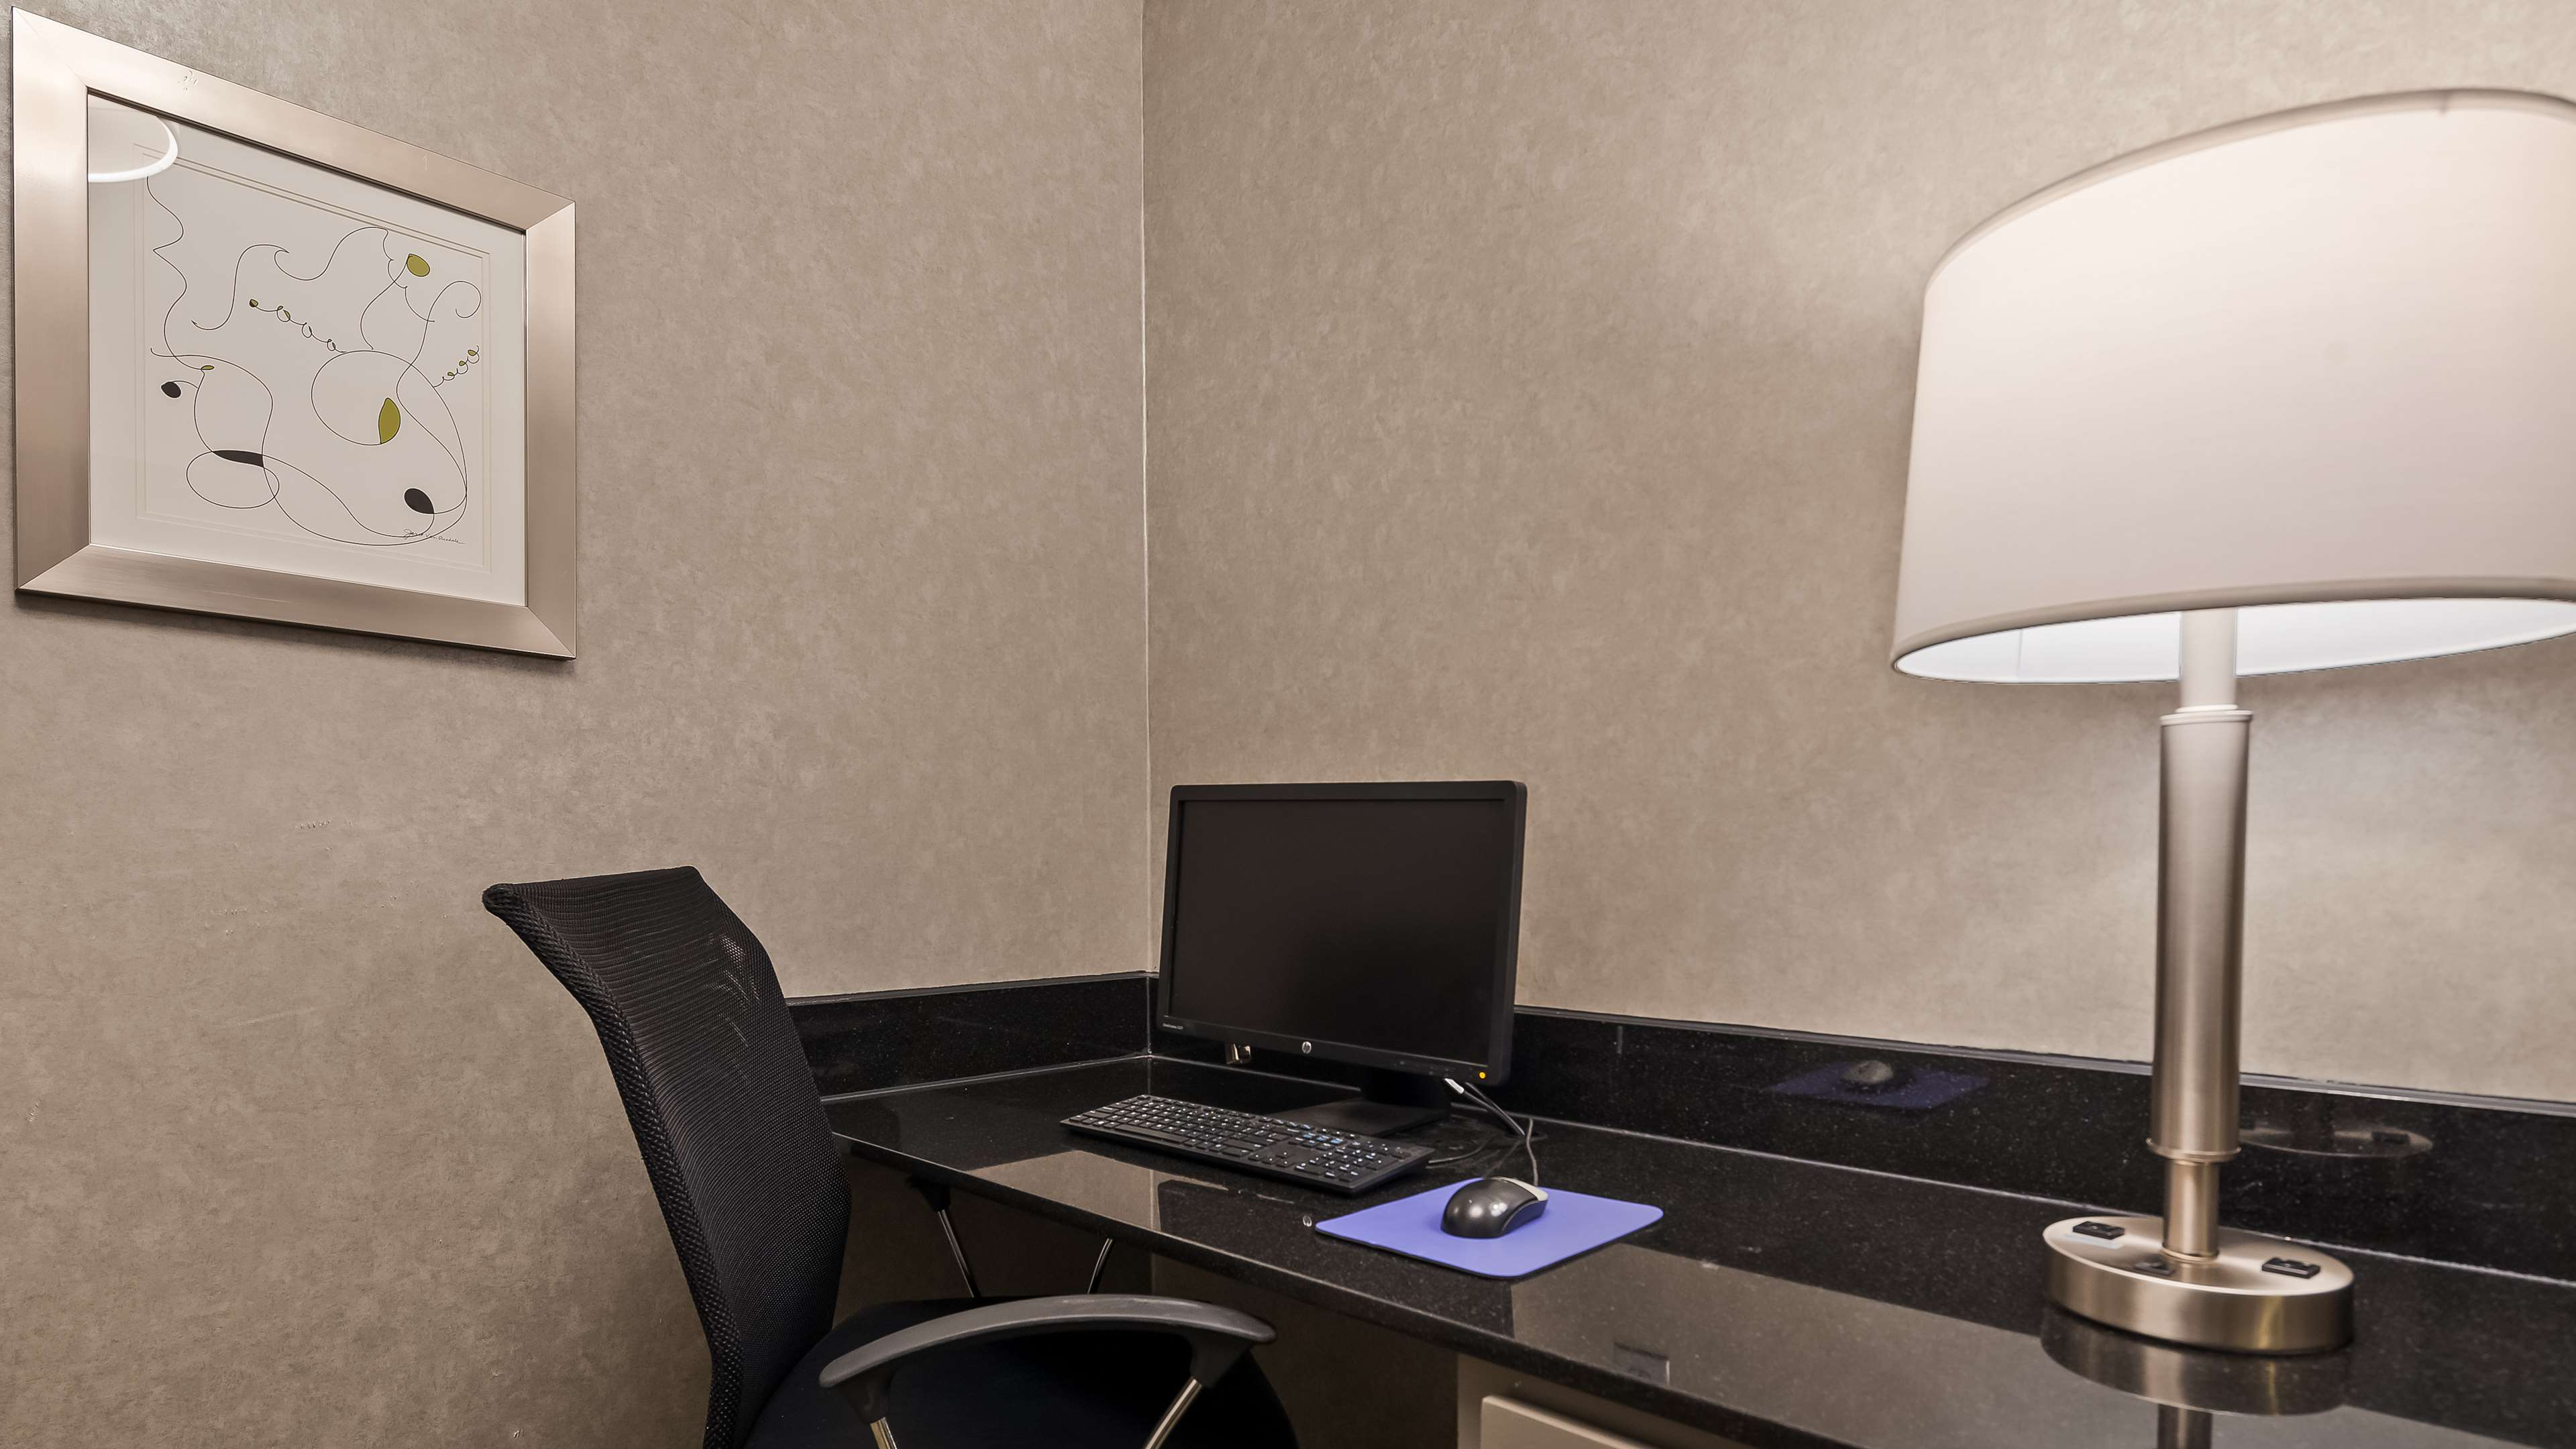 Best Western Irving Inn & Suites at DFW Airport image 7